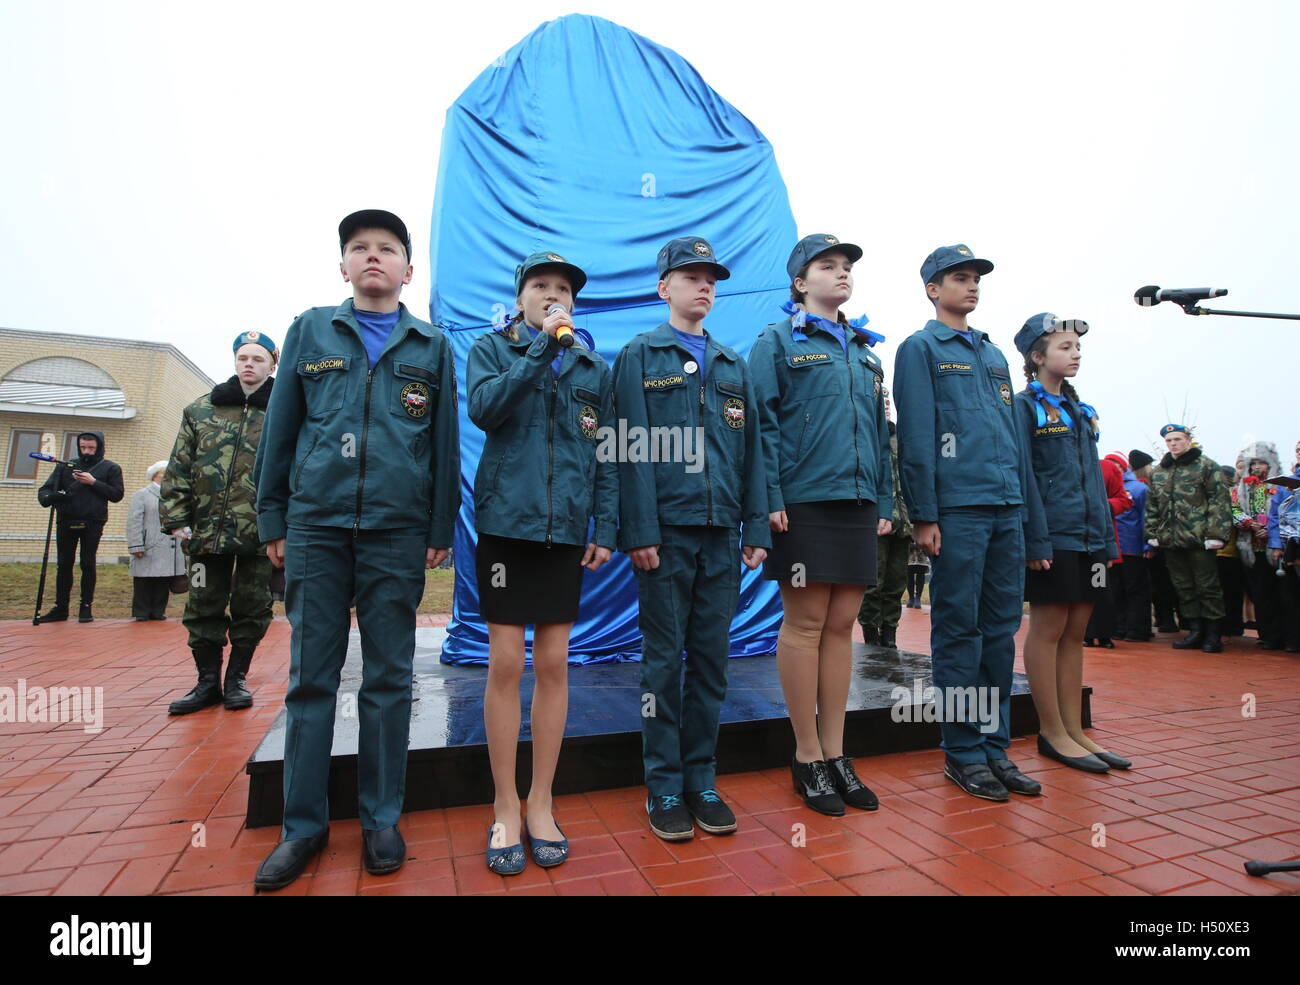 Tikhvin, Leningrad Region, Russia. 14th Oct, 2016. A war memorial unveiled to mark the 75th anniversary of the German - Stock Image